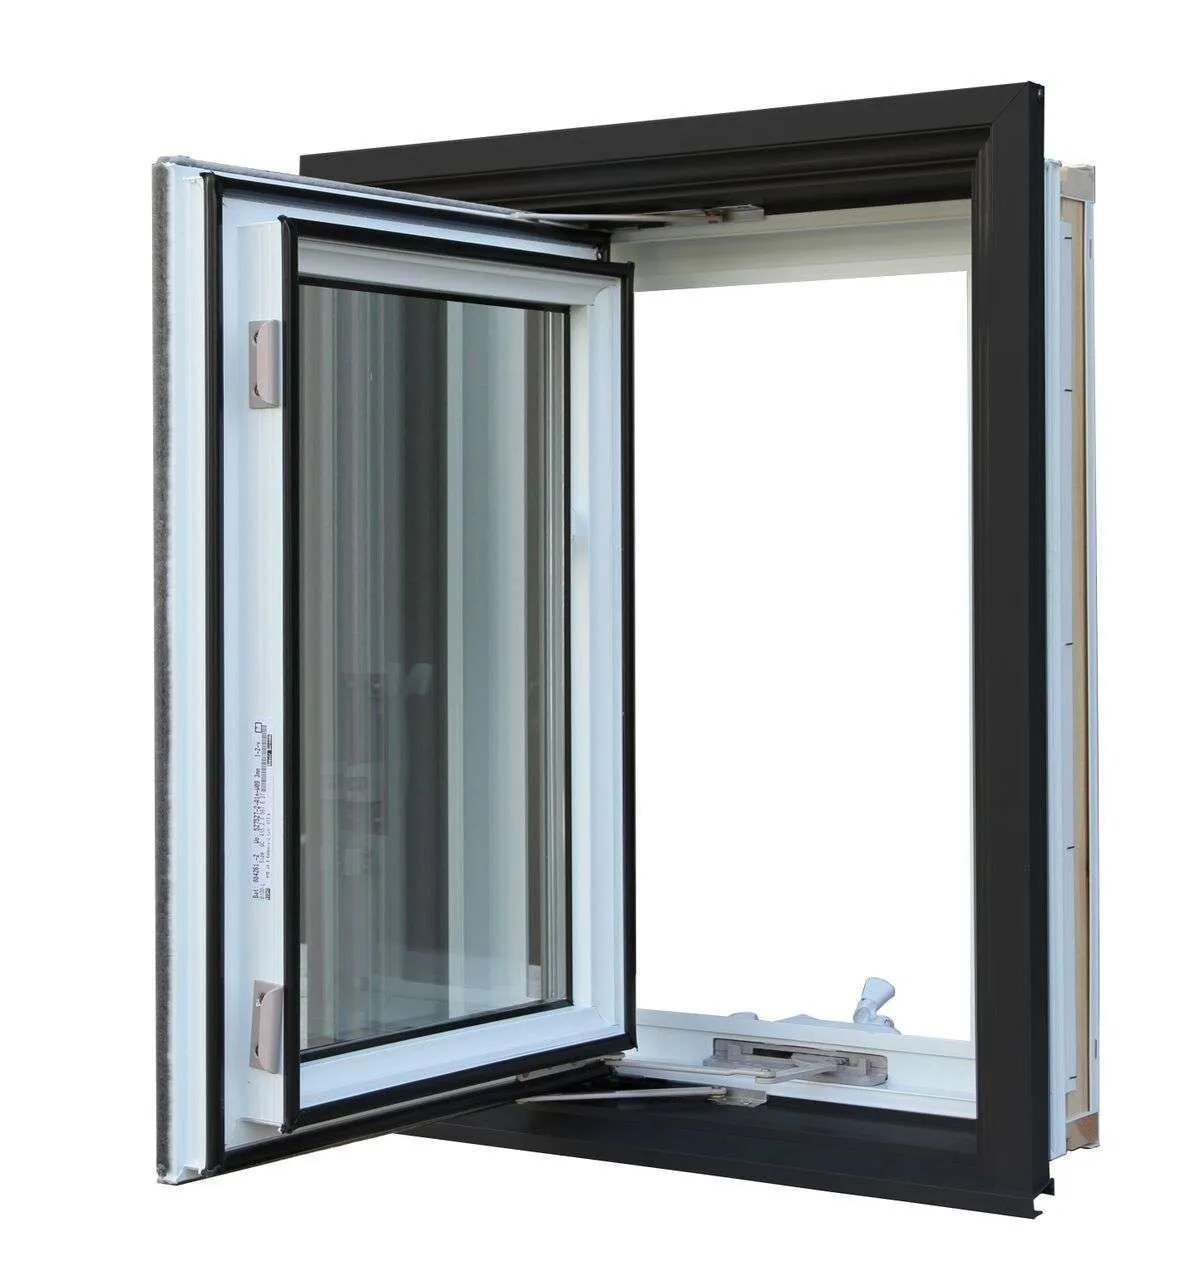 Farley Window Aluminum Casement Windows Farley Windows Doors